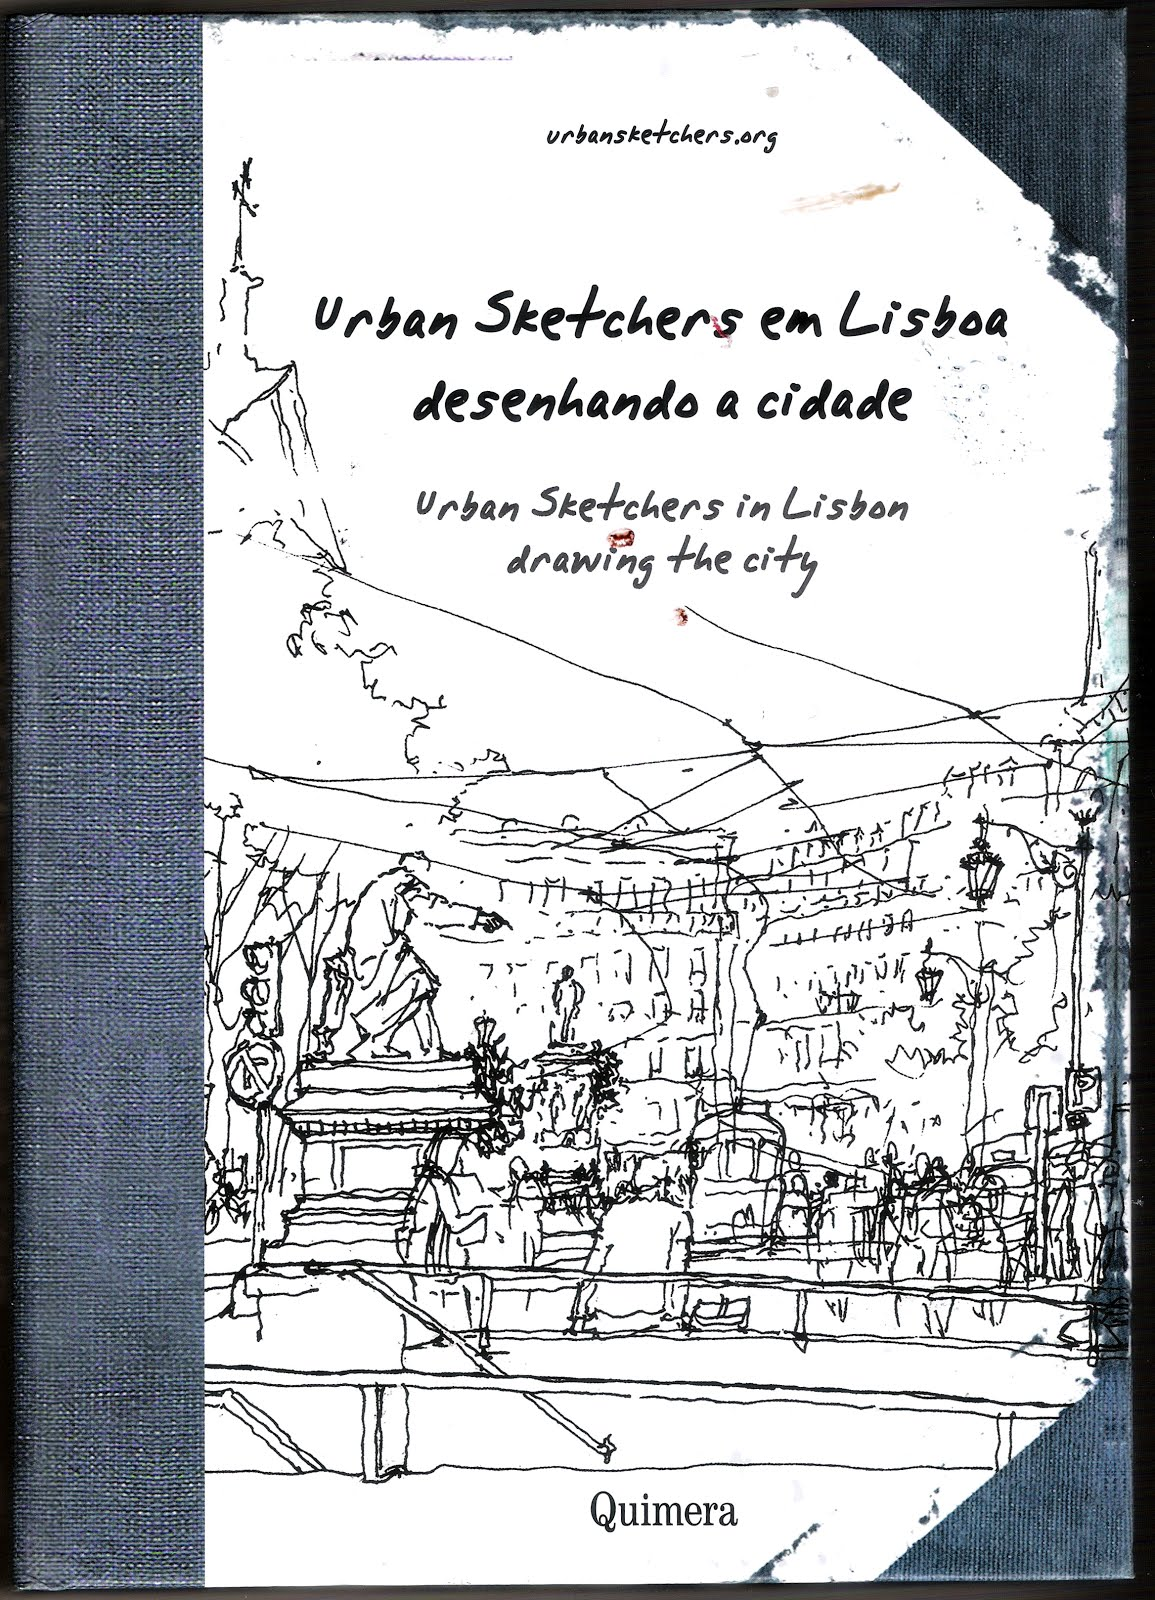 Urban Sketchers em Lisboa